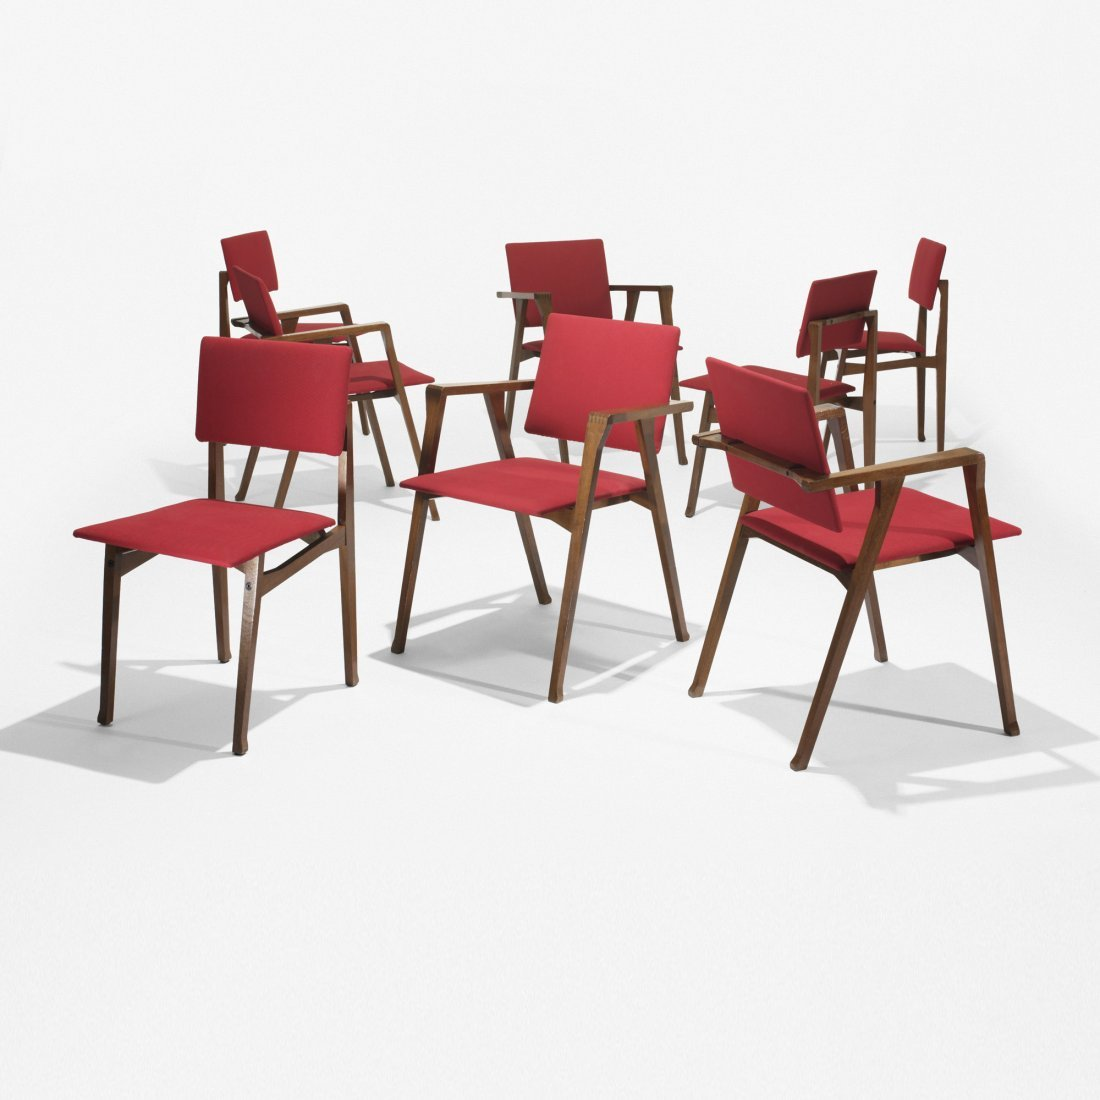 104: Franco Albini Luisa dining chairs, set of eight